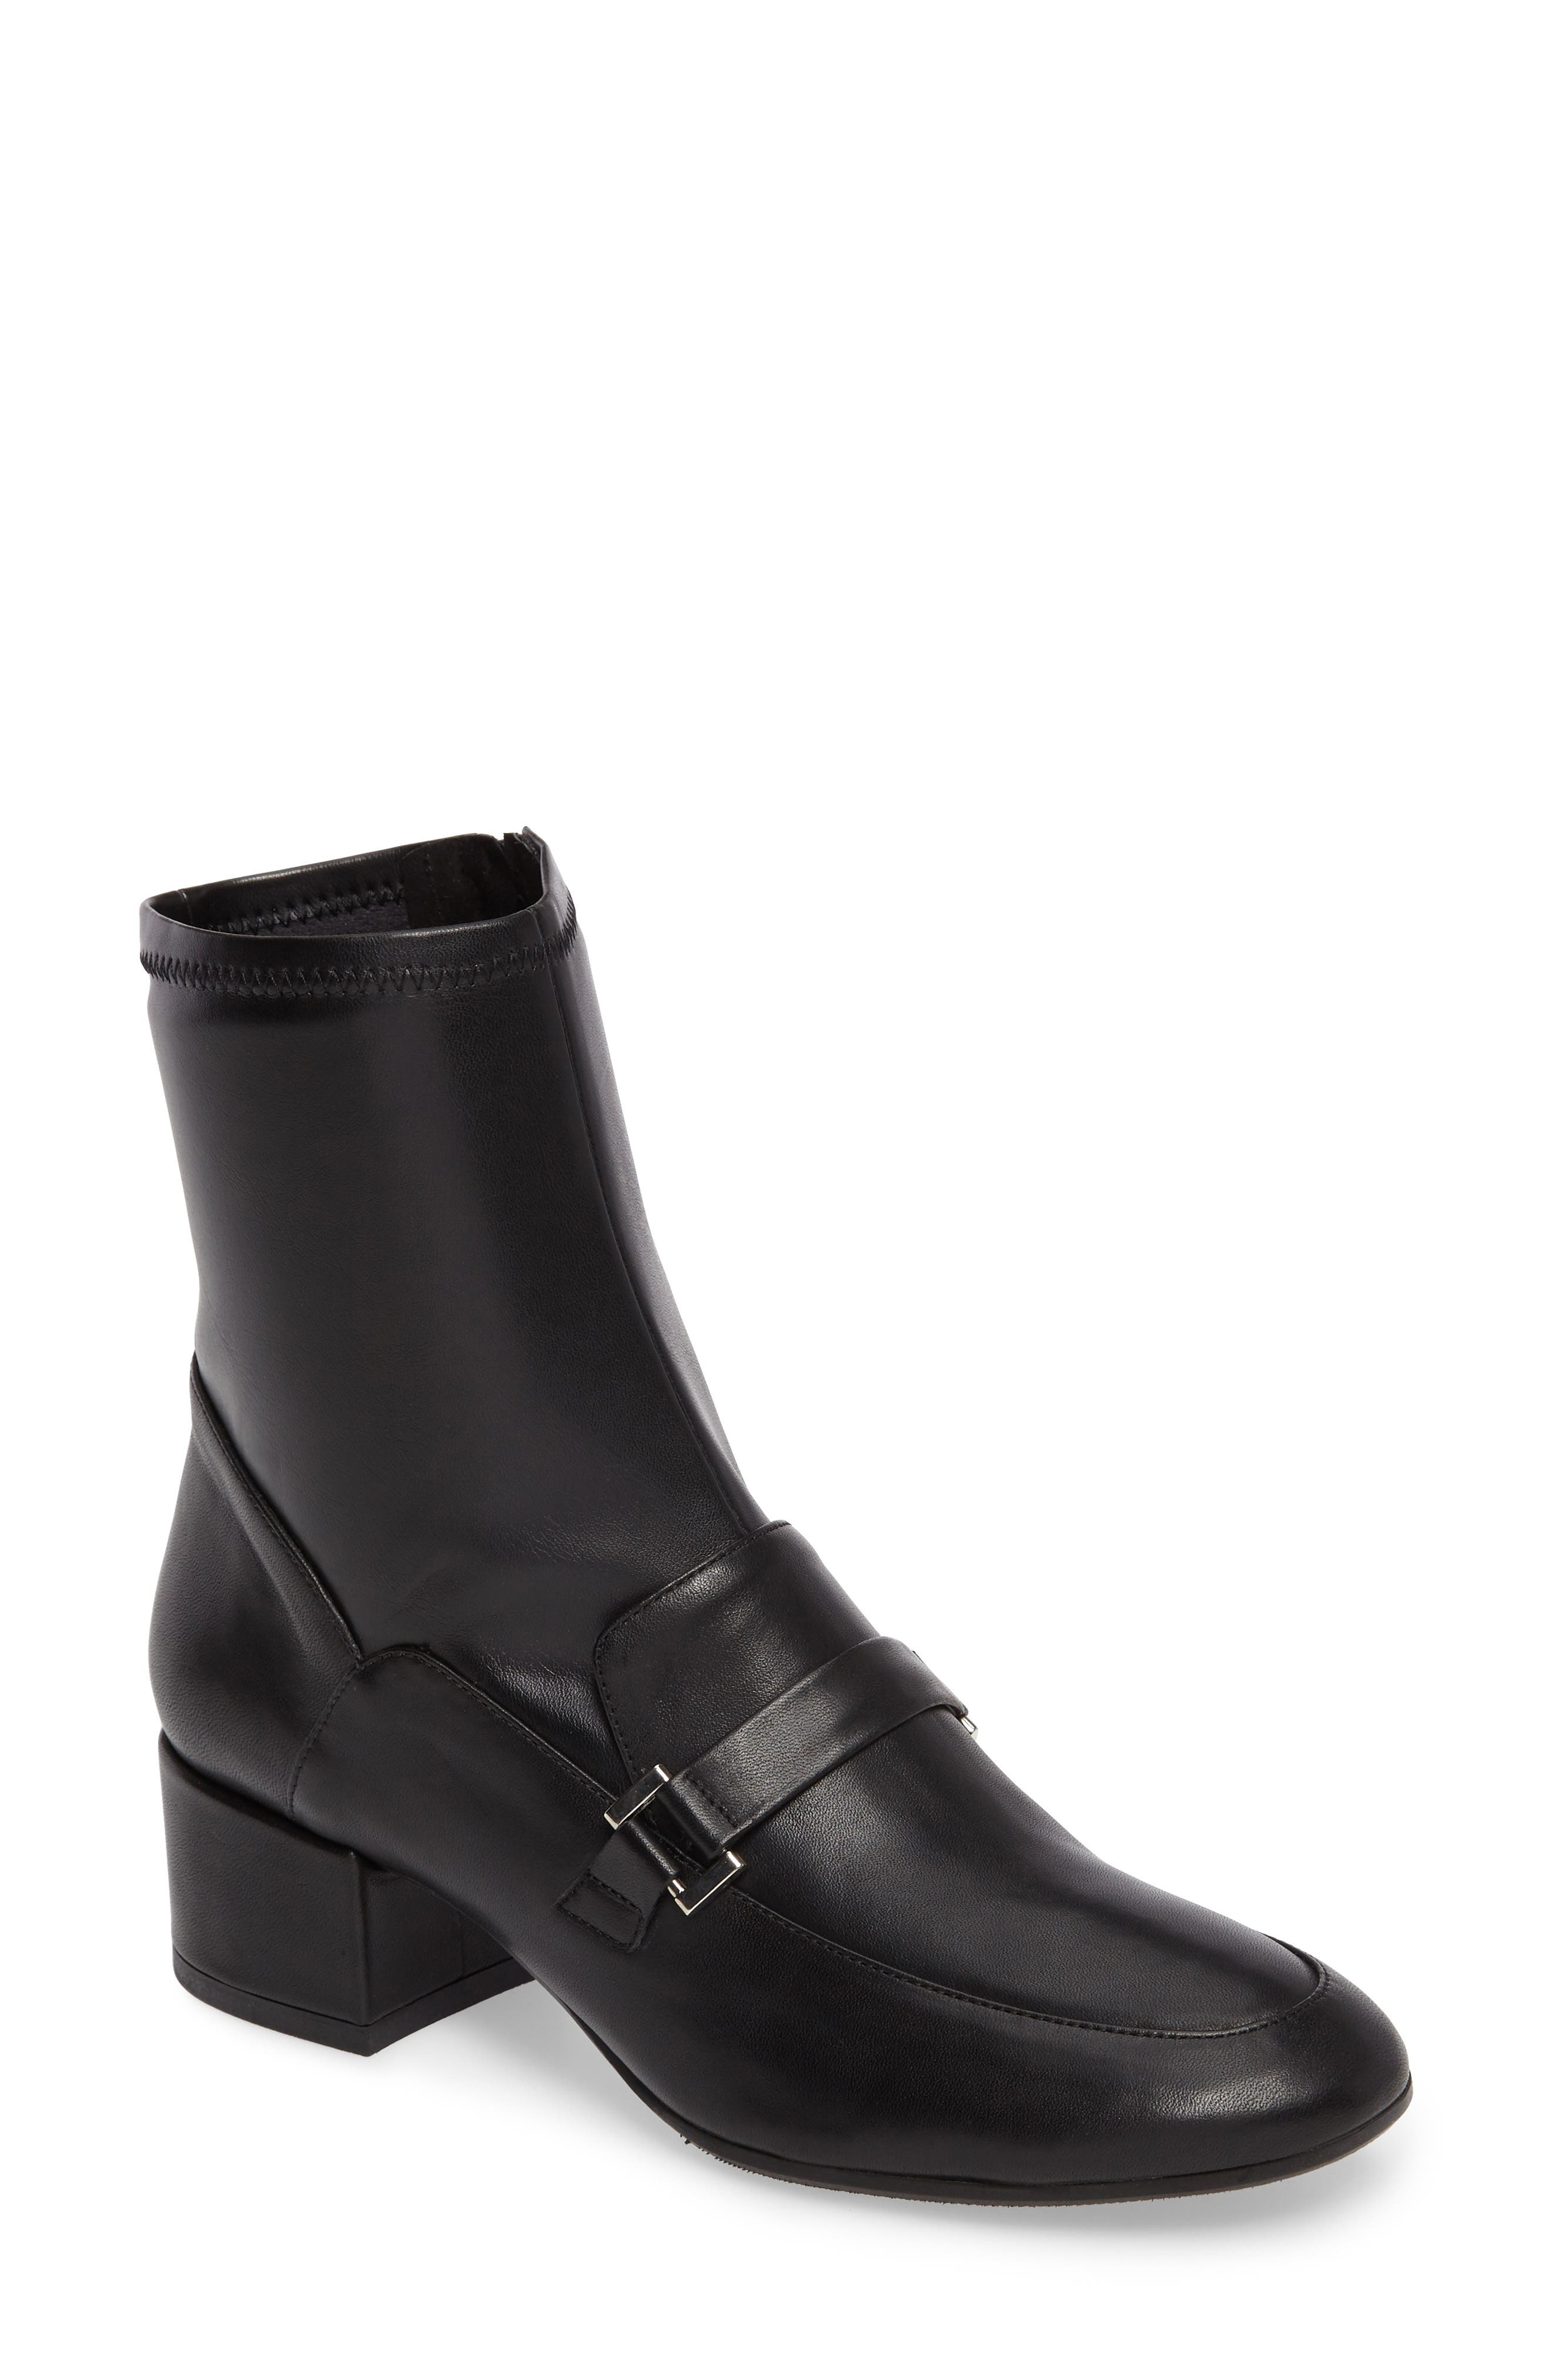 Mod Loafer Bootie,                         Main,                         color, Black Stretch Leather